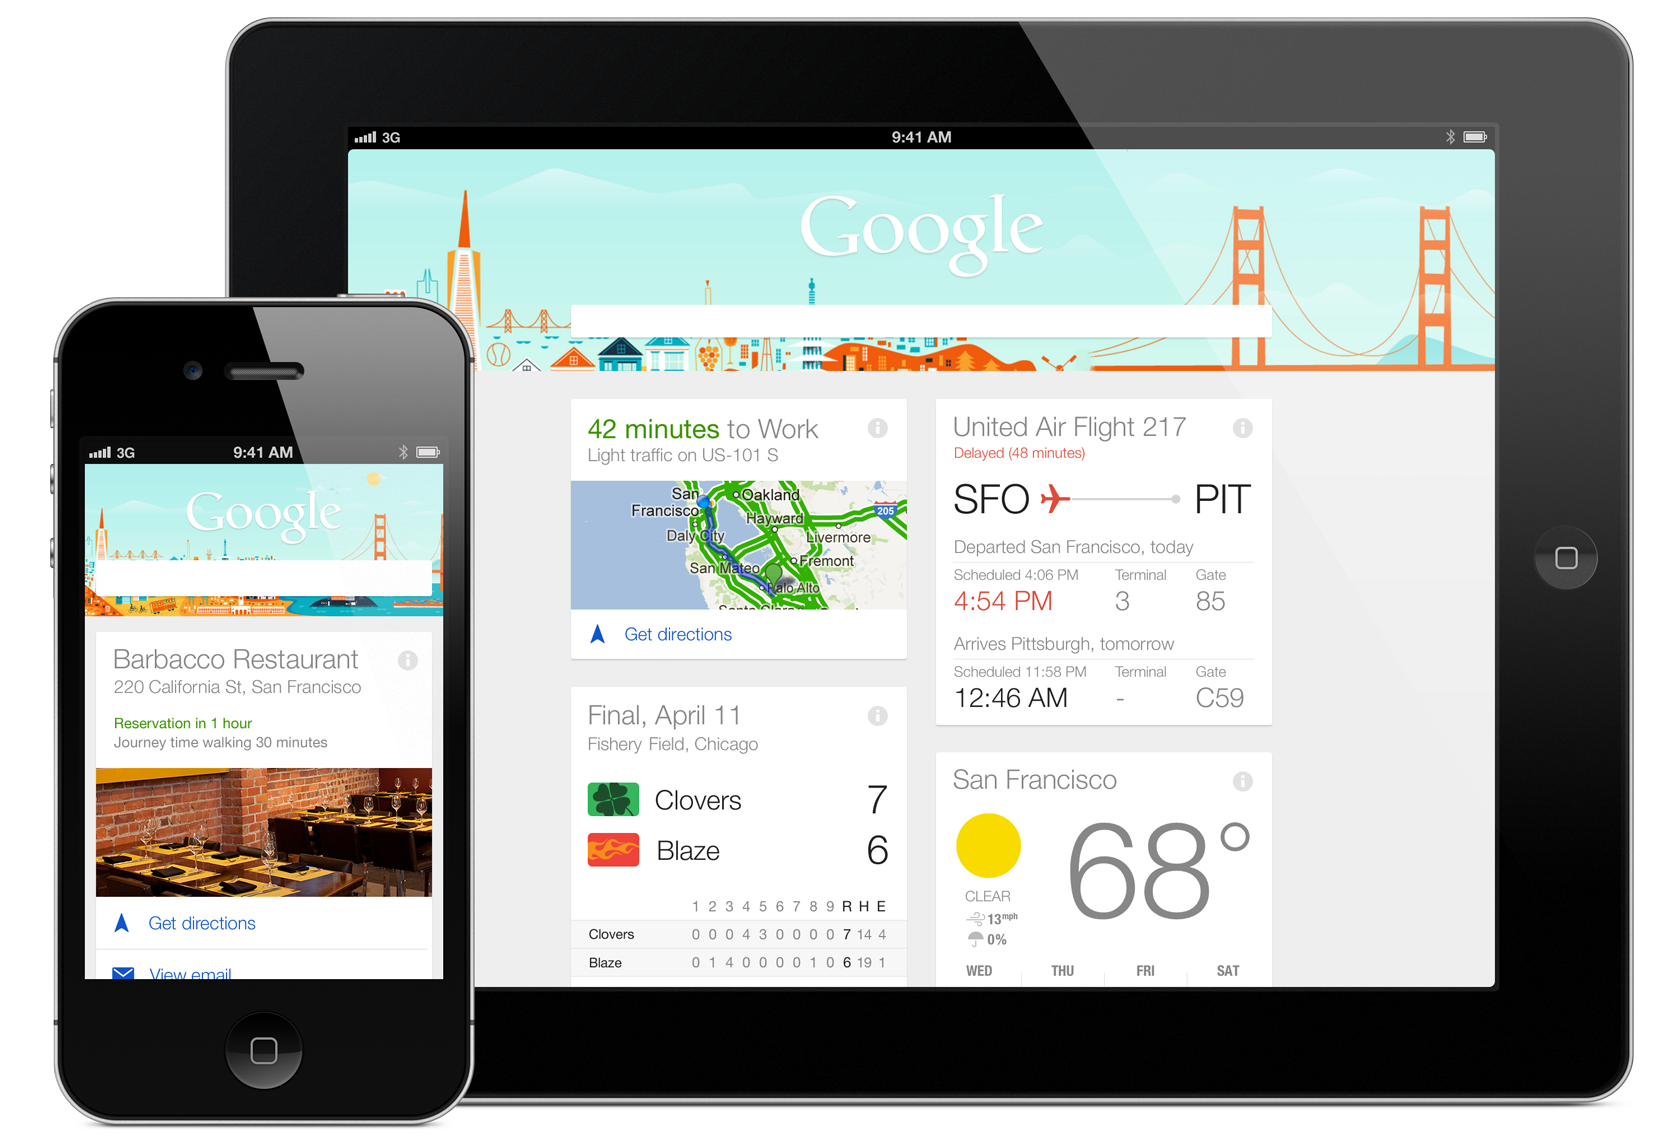 google now anticipatory design apps